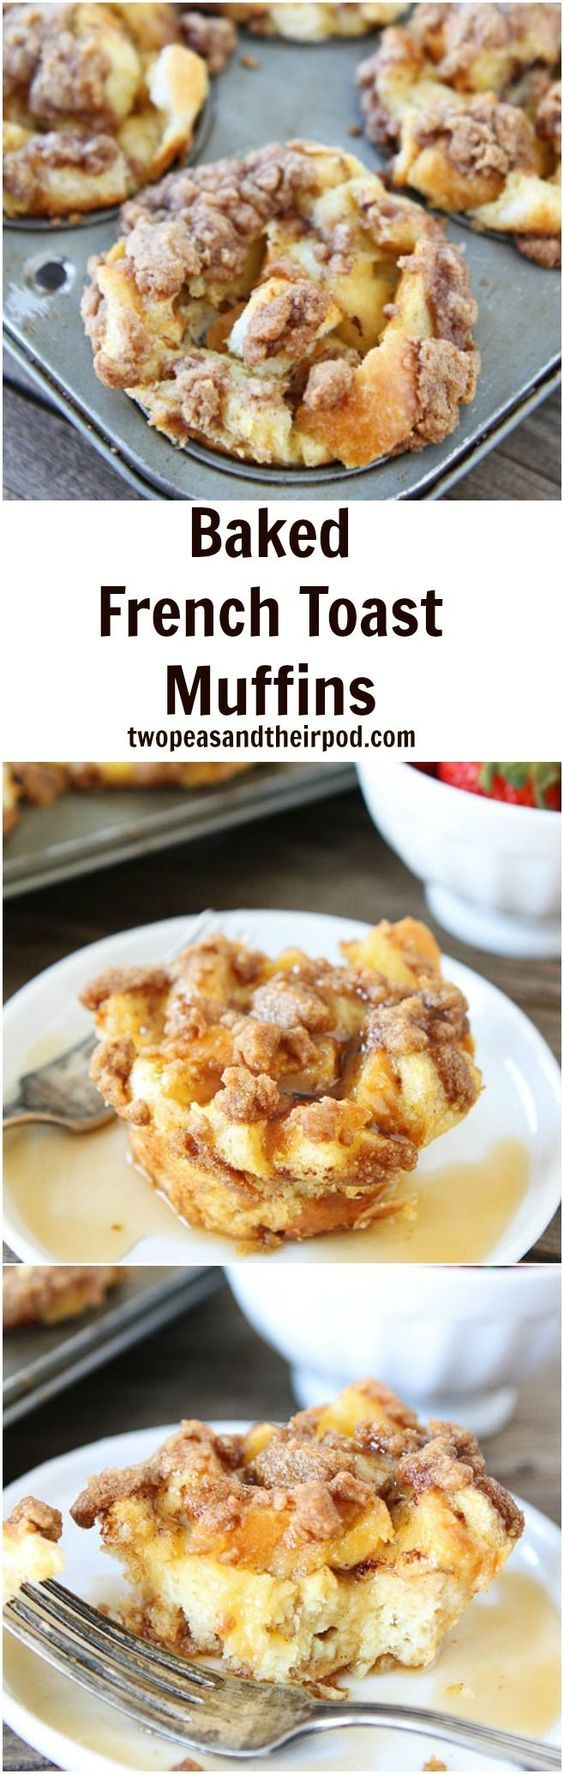 Baked French Toast Muffins Recipe on http://twopeasandtheirpod.com Enjoy French toast in muffin form! These sweet muffins are a real breakfast treat! (French Dessert Recipes)